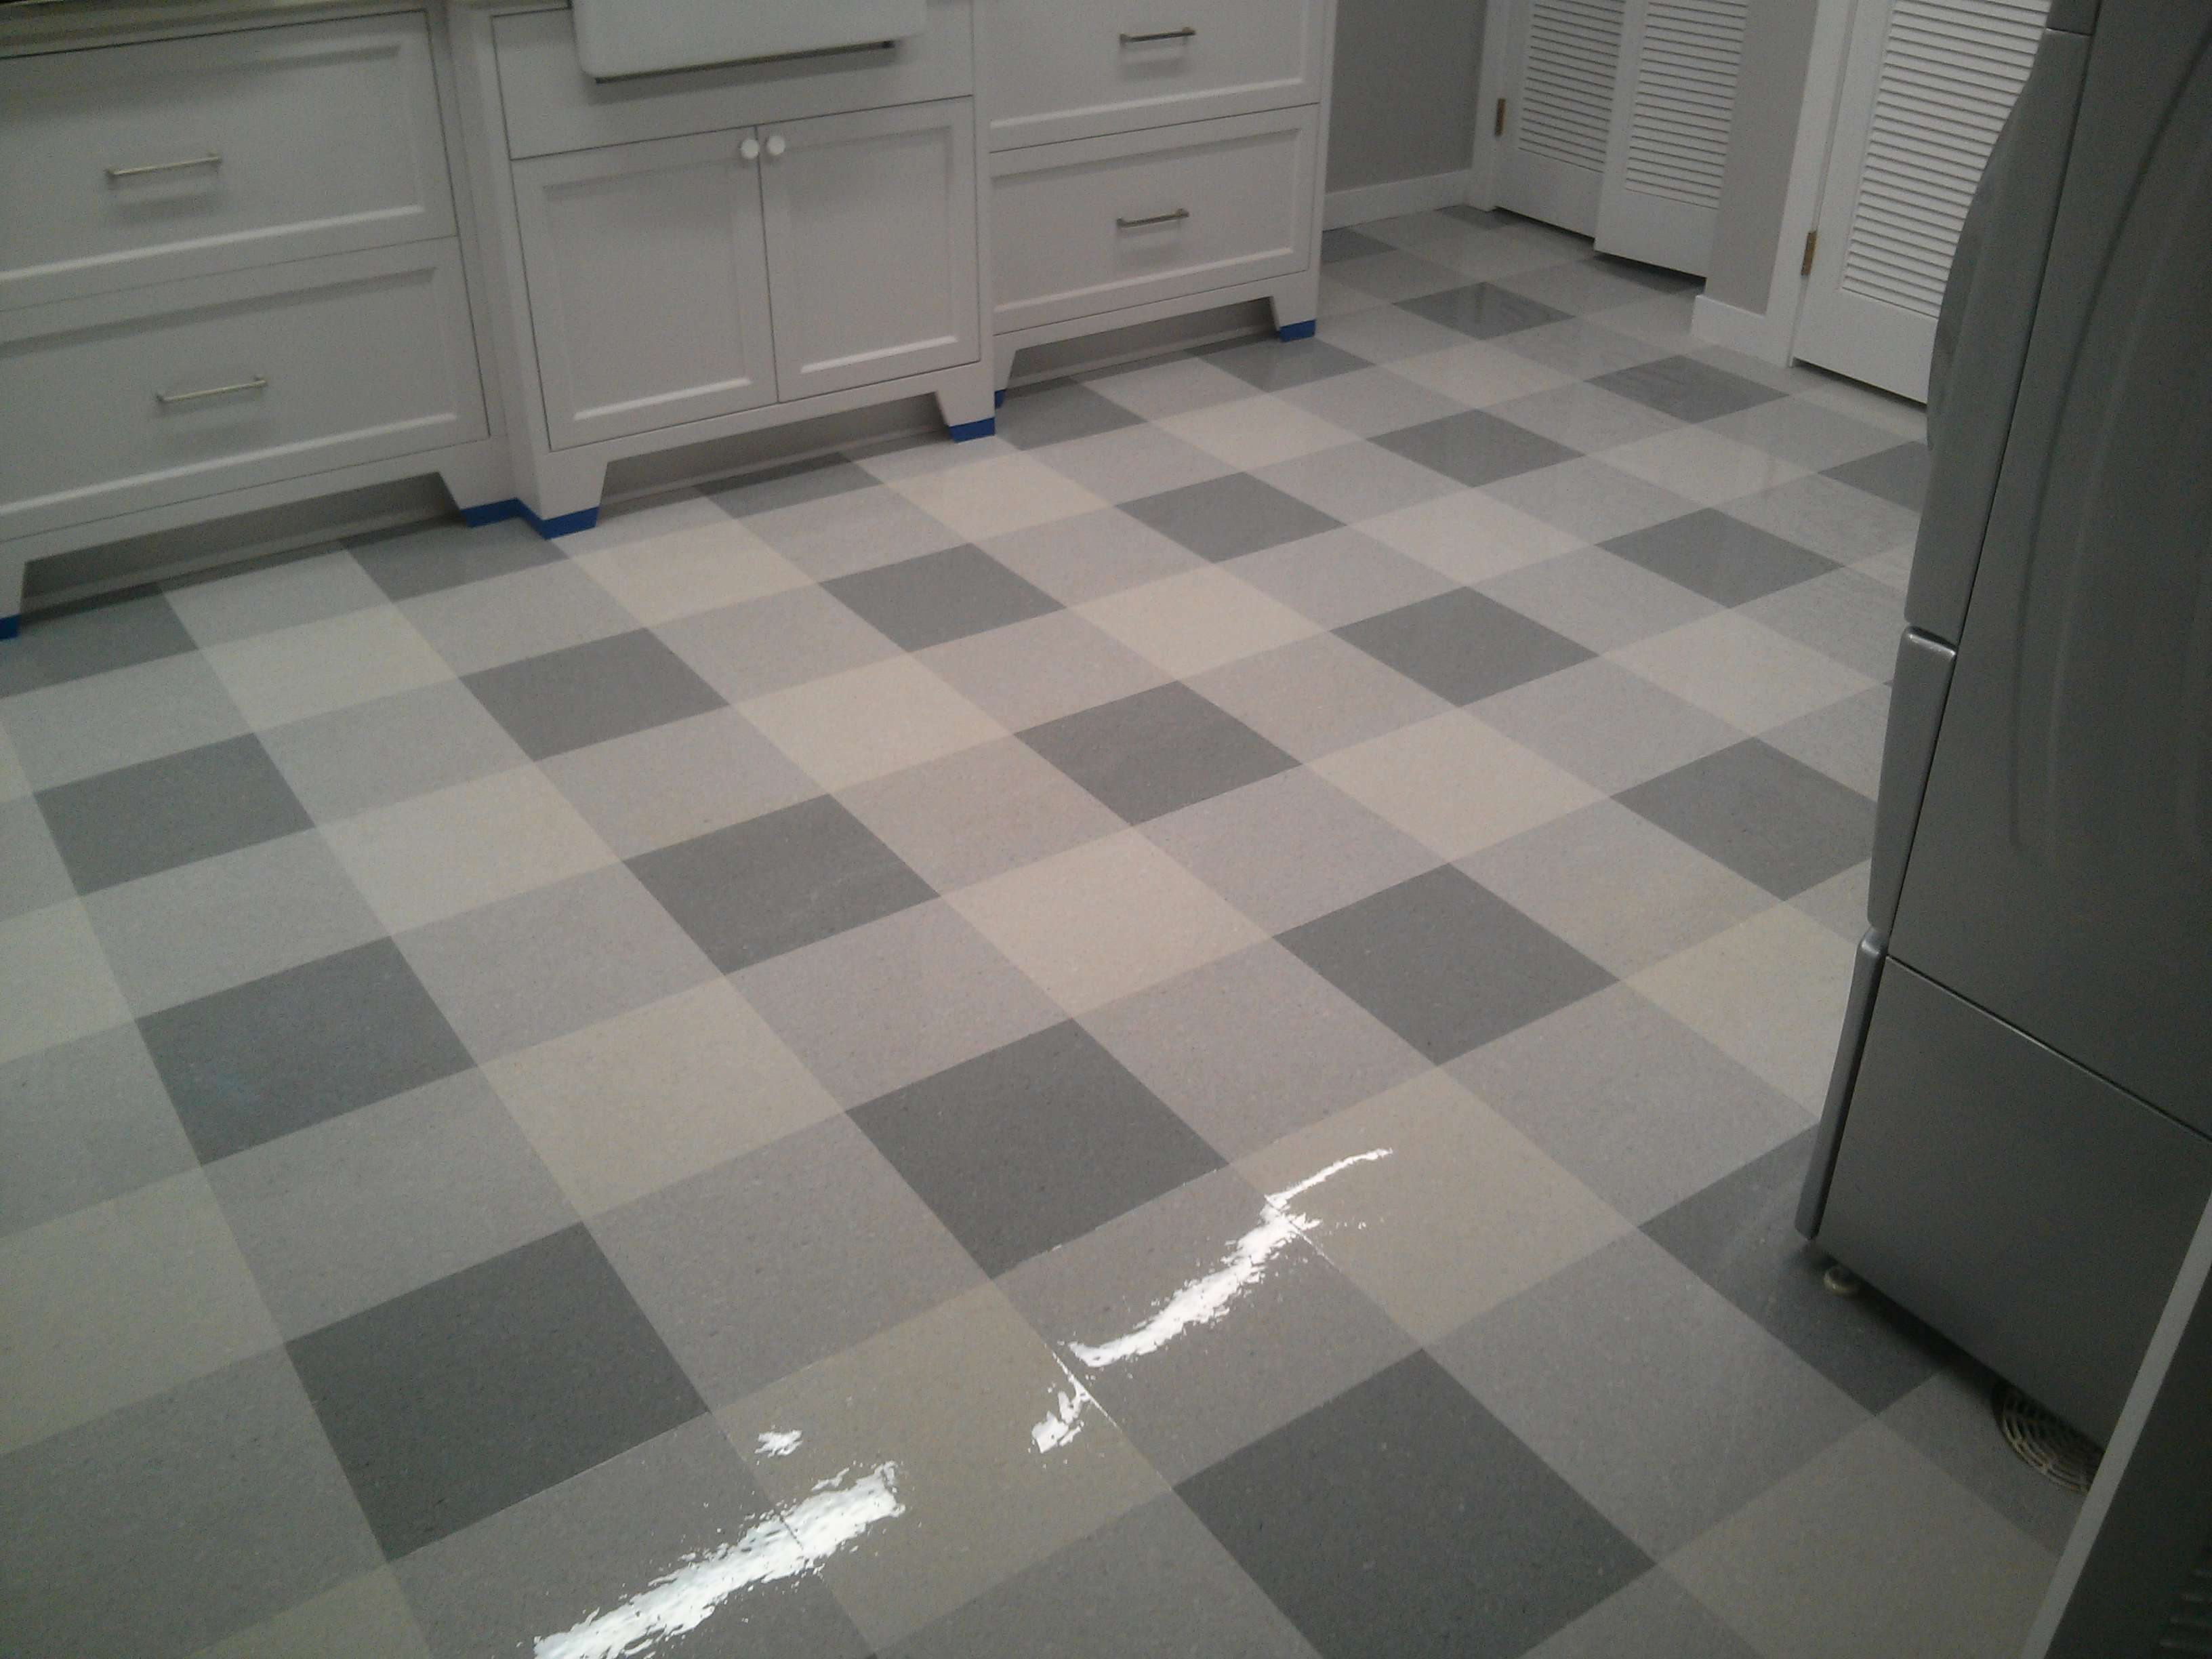 Cool 12 X 12 Floor Tile Thick 1200 X 600 Ceiling Tiles Flat 12X12 Ceiling Tiles Home Depot 12X12 Ceramic Tiles Young 12X24 Ceramic Floor Tile Black12X24 Ceramic Tile Patterns Very Small (But Cute) VCT Floor Tile Job In Edina, MN